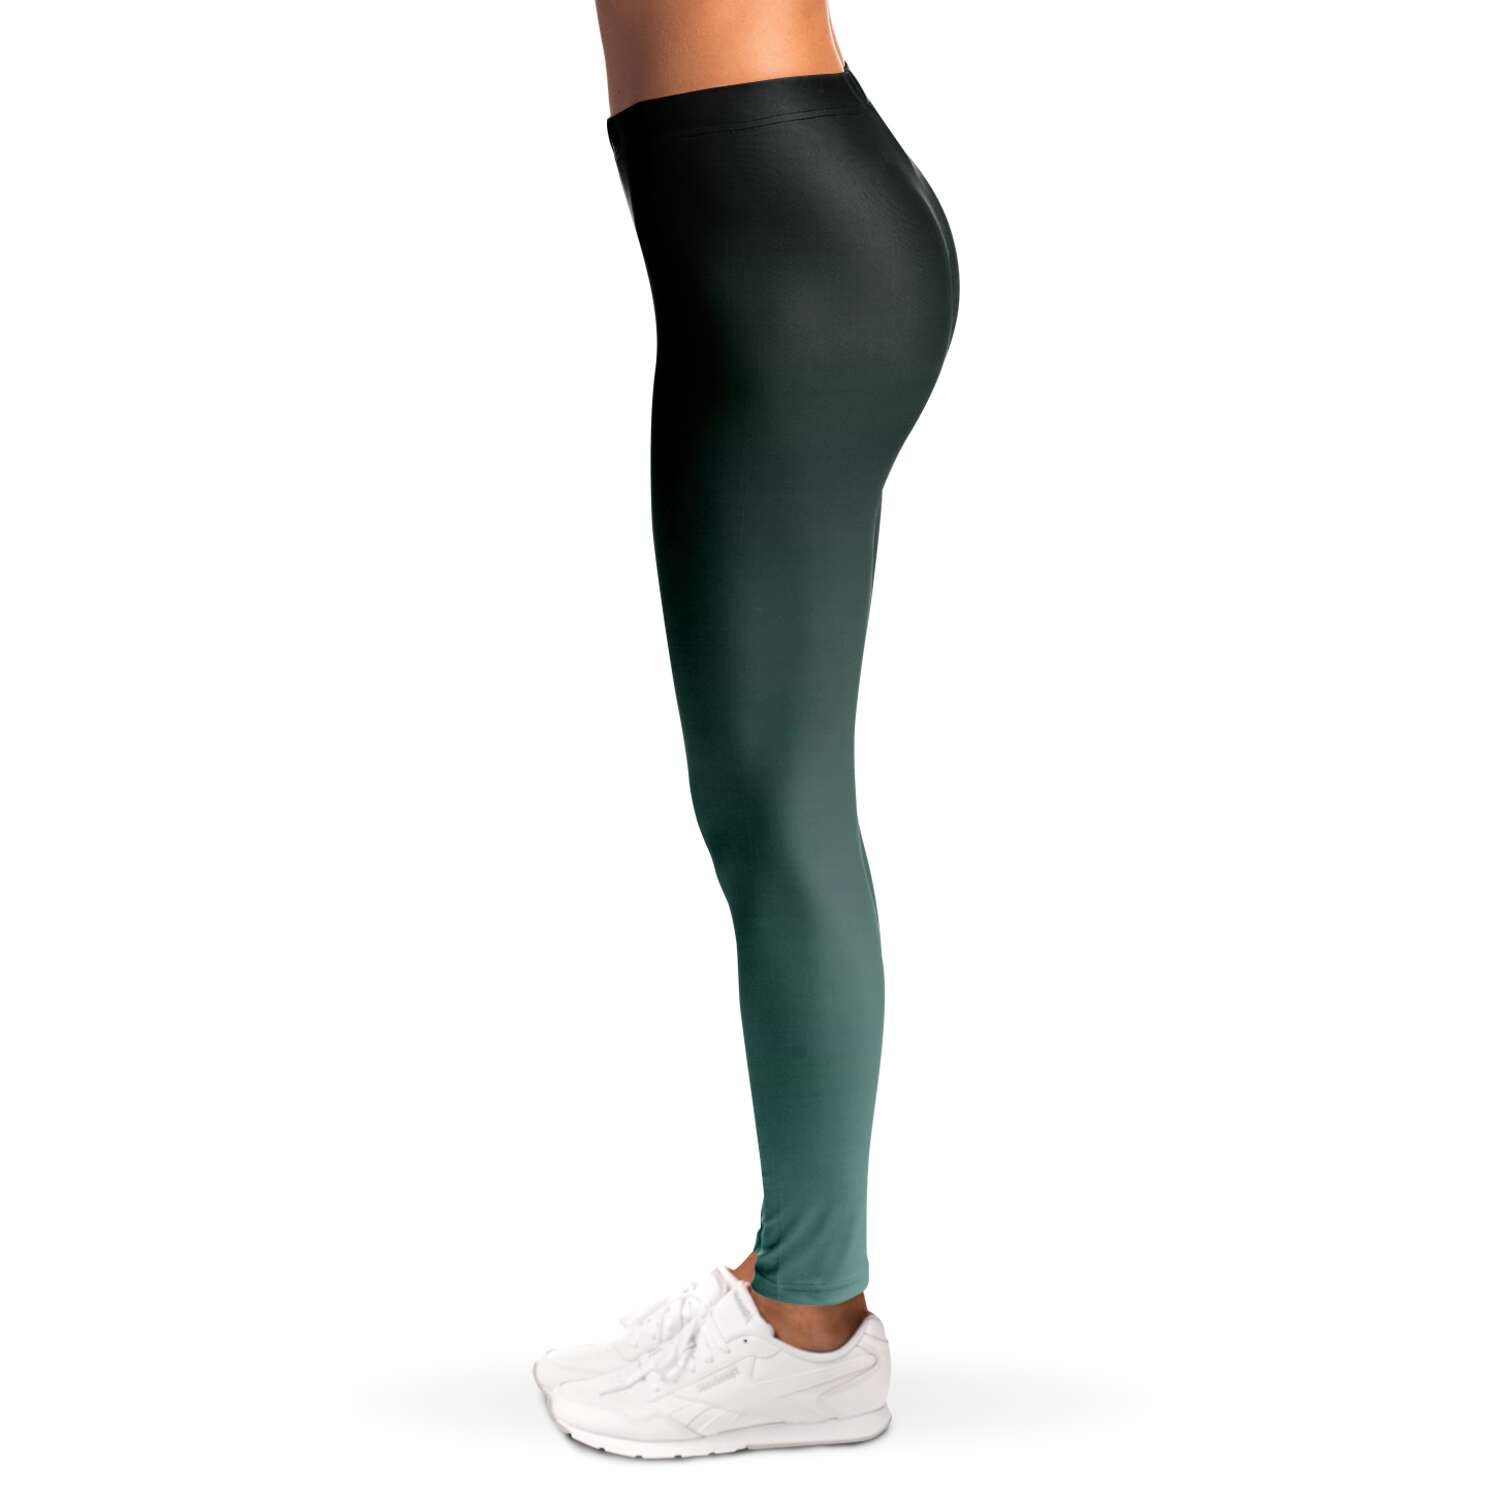 Black to Turquoise Ombre Leggings